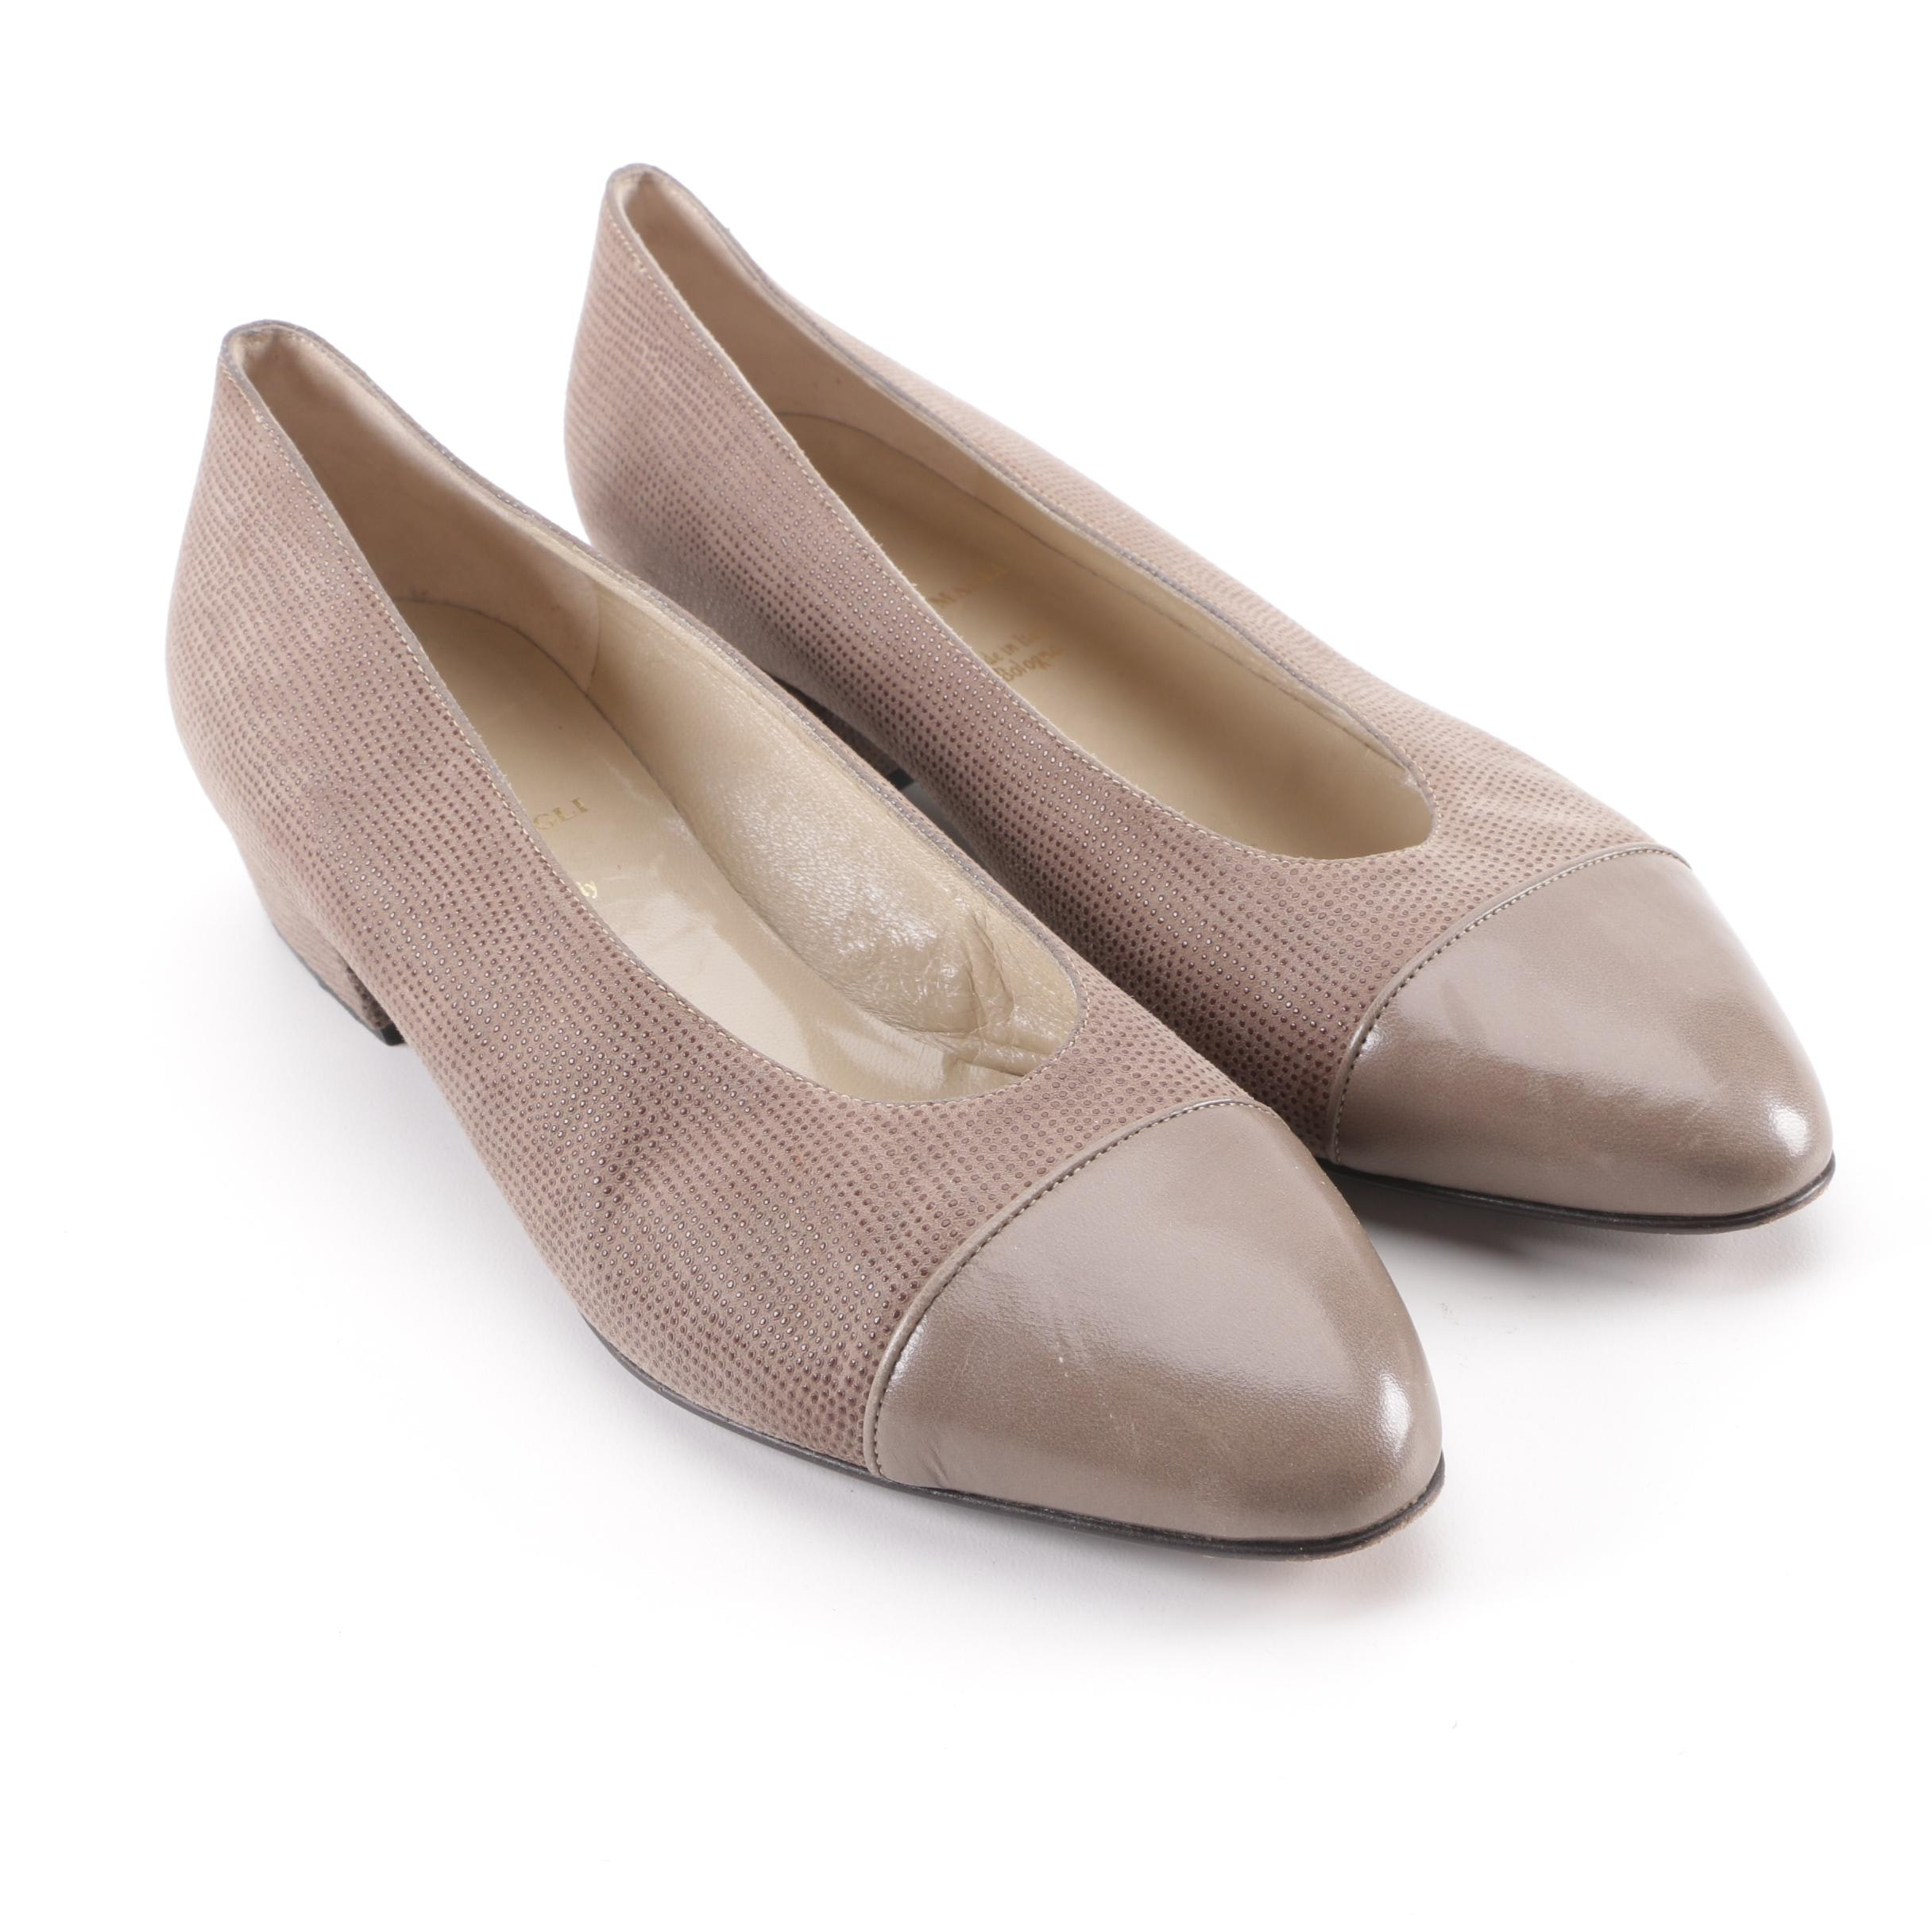 Bruno Magli Taupe Leather Flats, Made in Italy